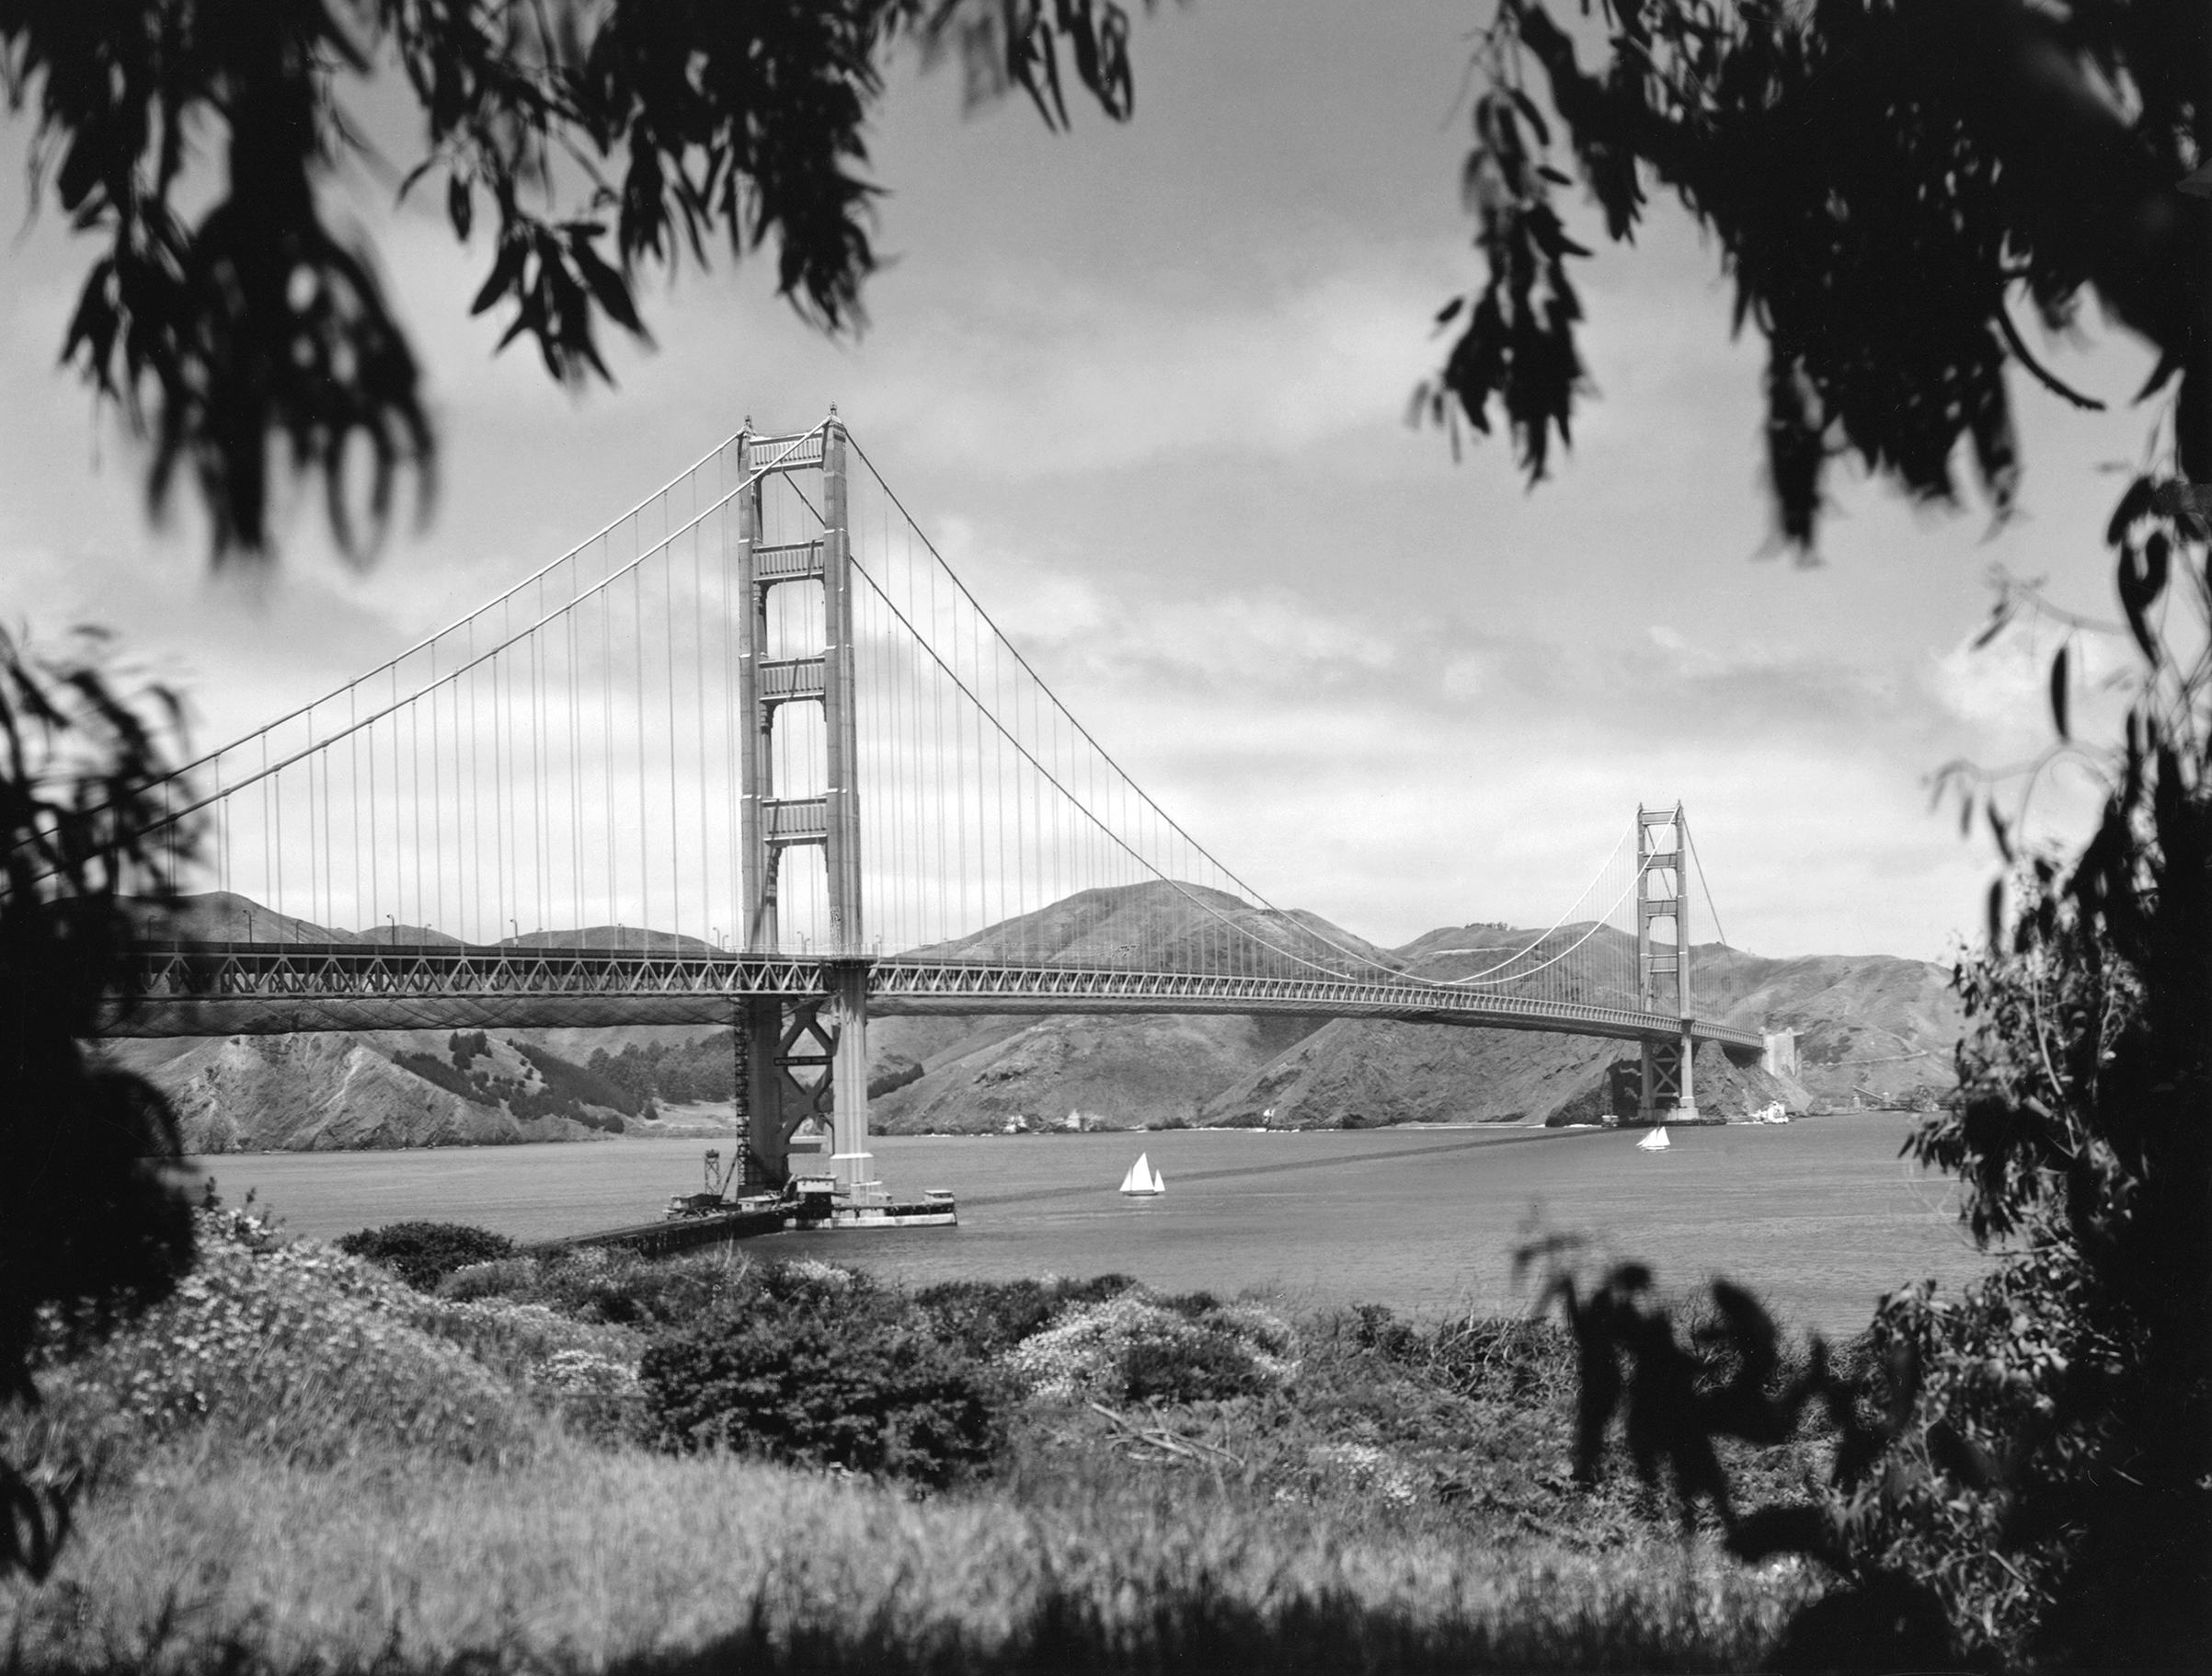 The nearly completed Golden Gate Bridge as seen from the Presidio with the Marin Headlands in the background, San Francisco, California, May 1937.